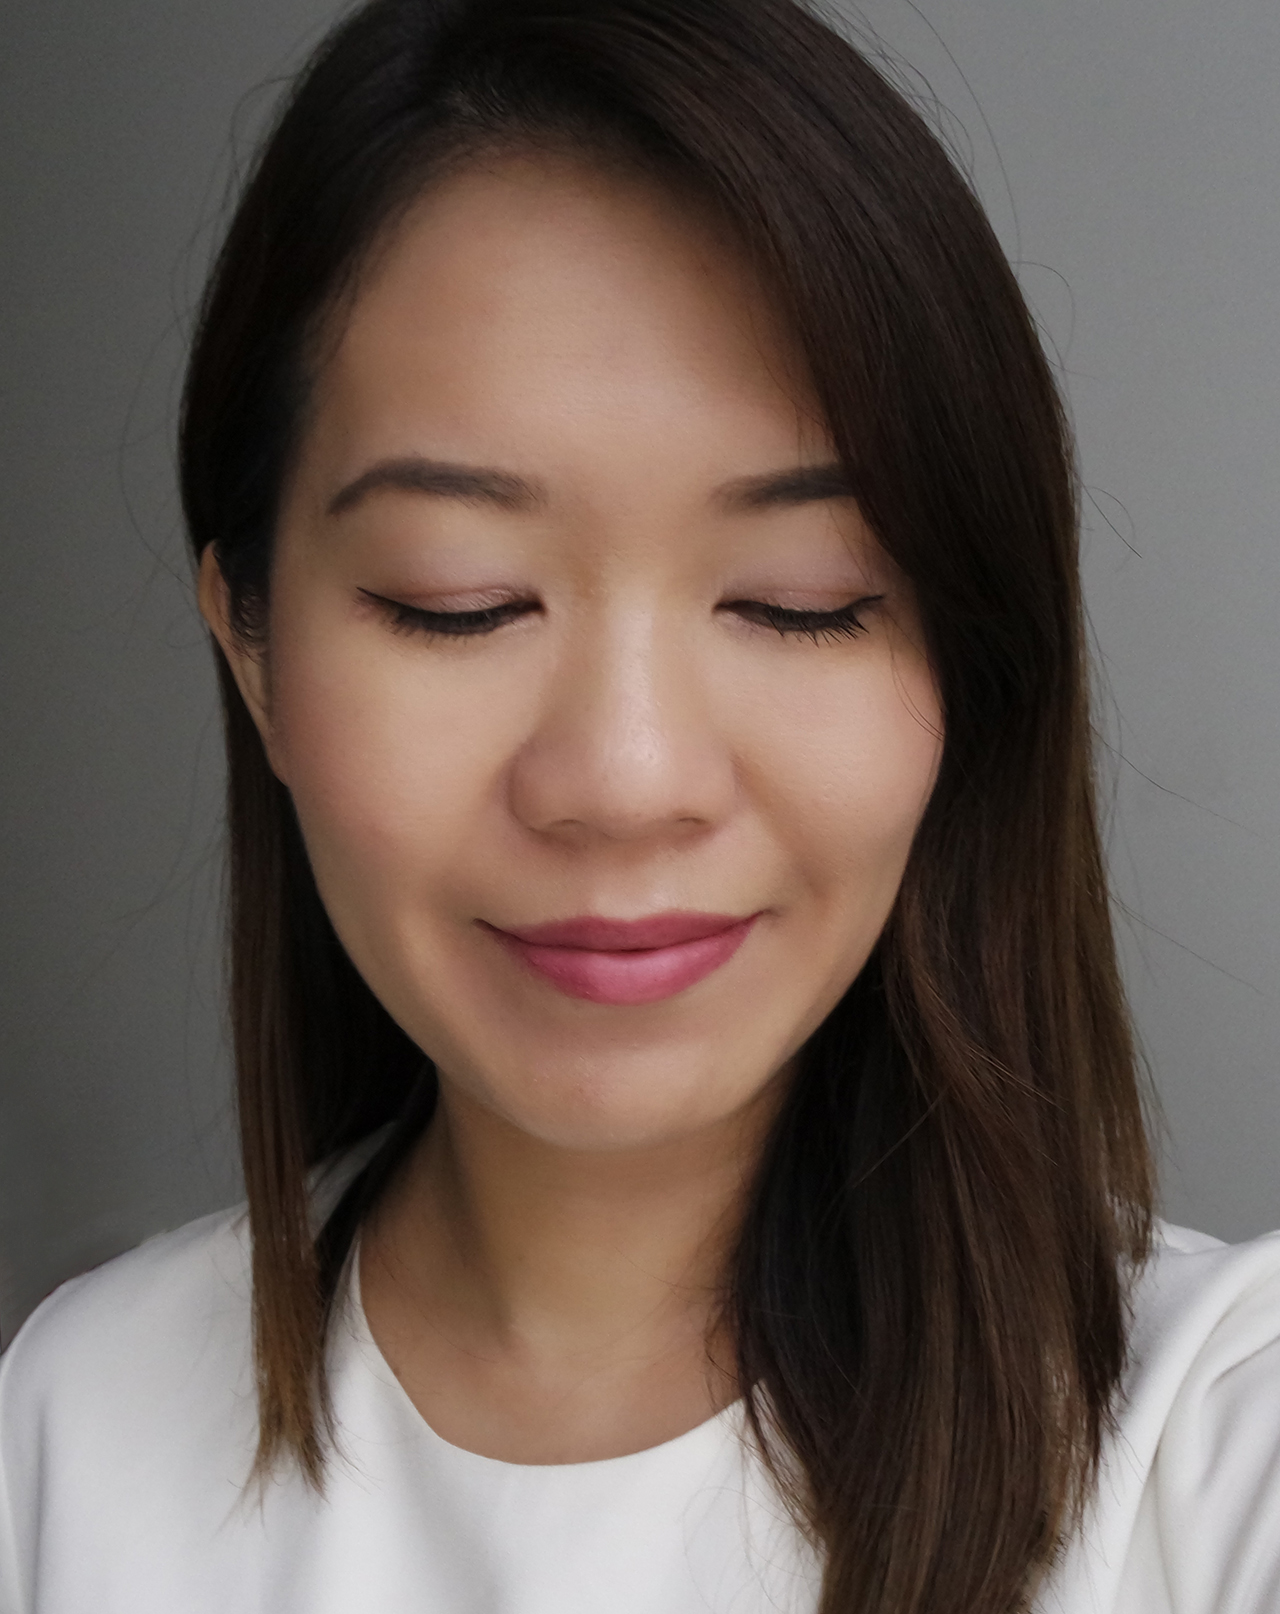 Benefit They're Real Lusty Rose & Naughty Neutral makeup look